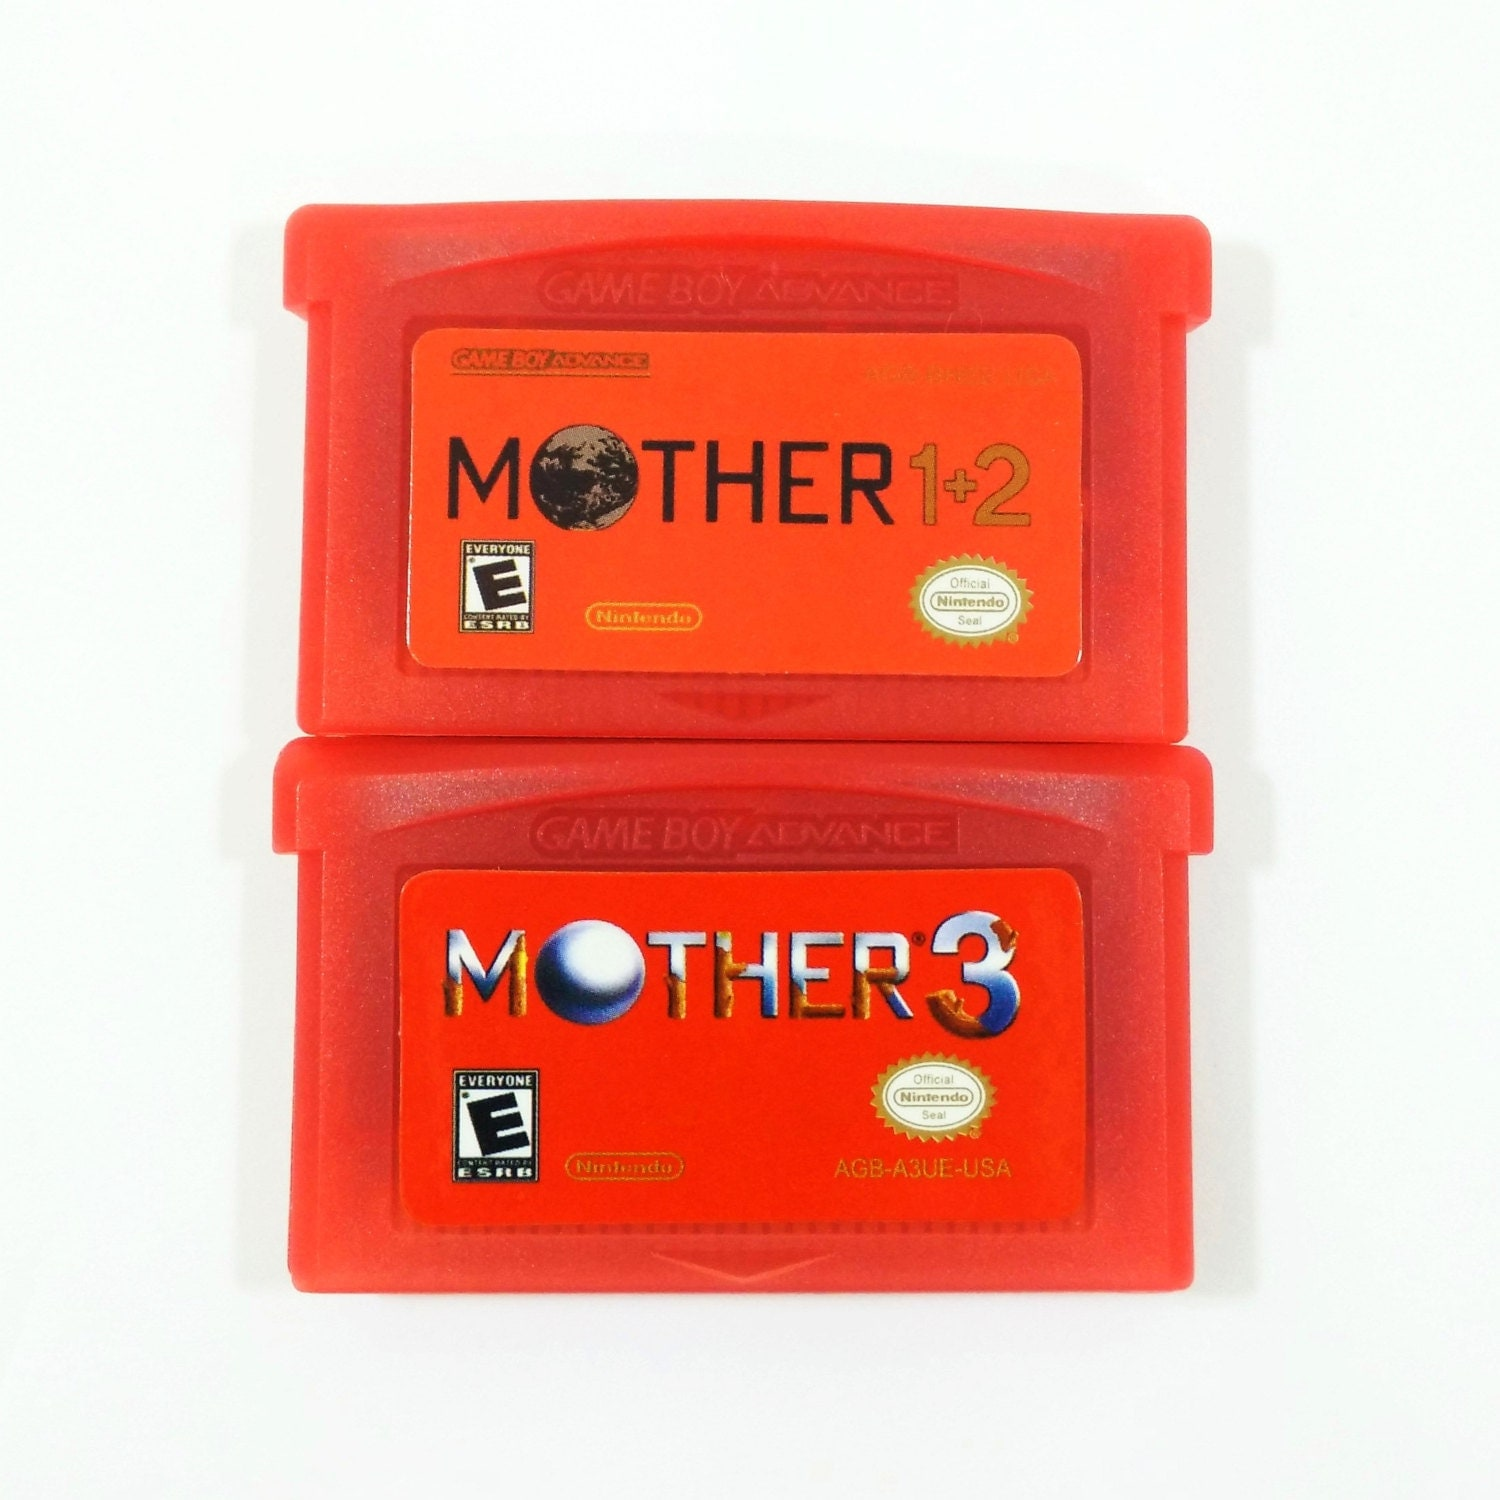 mother 1 2 3 gba earthbound carts english fan translations zoom